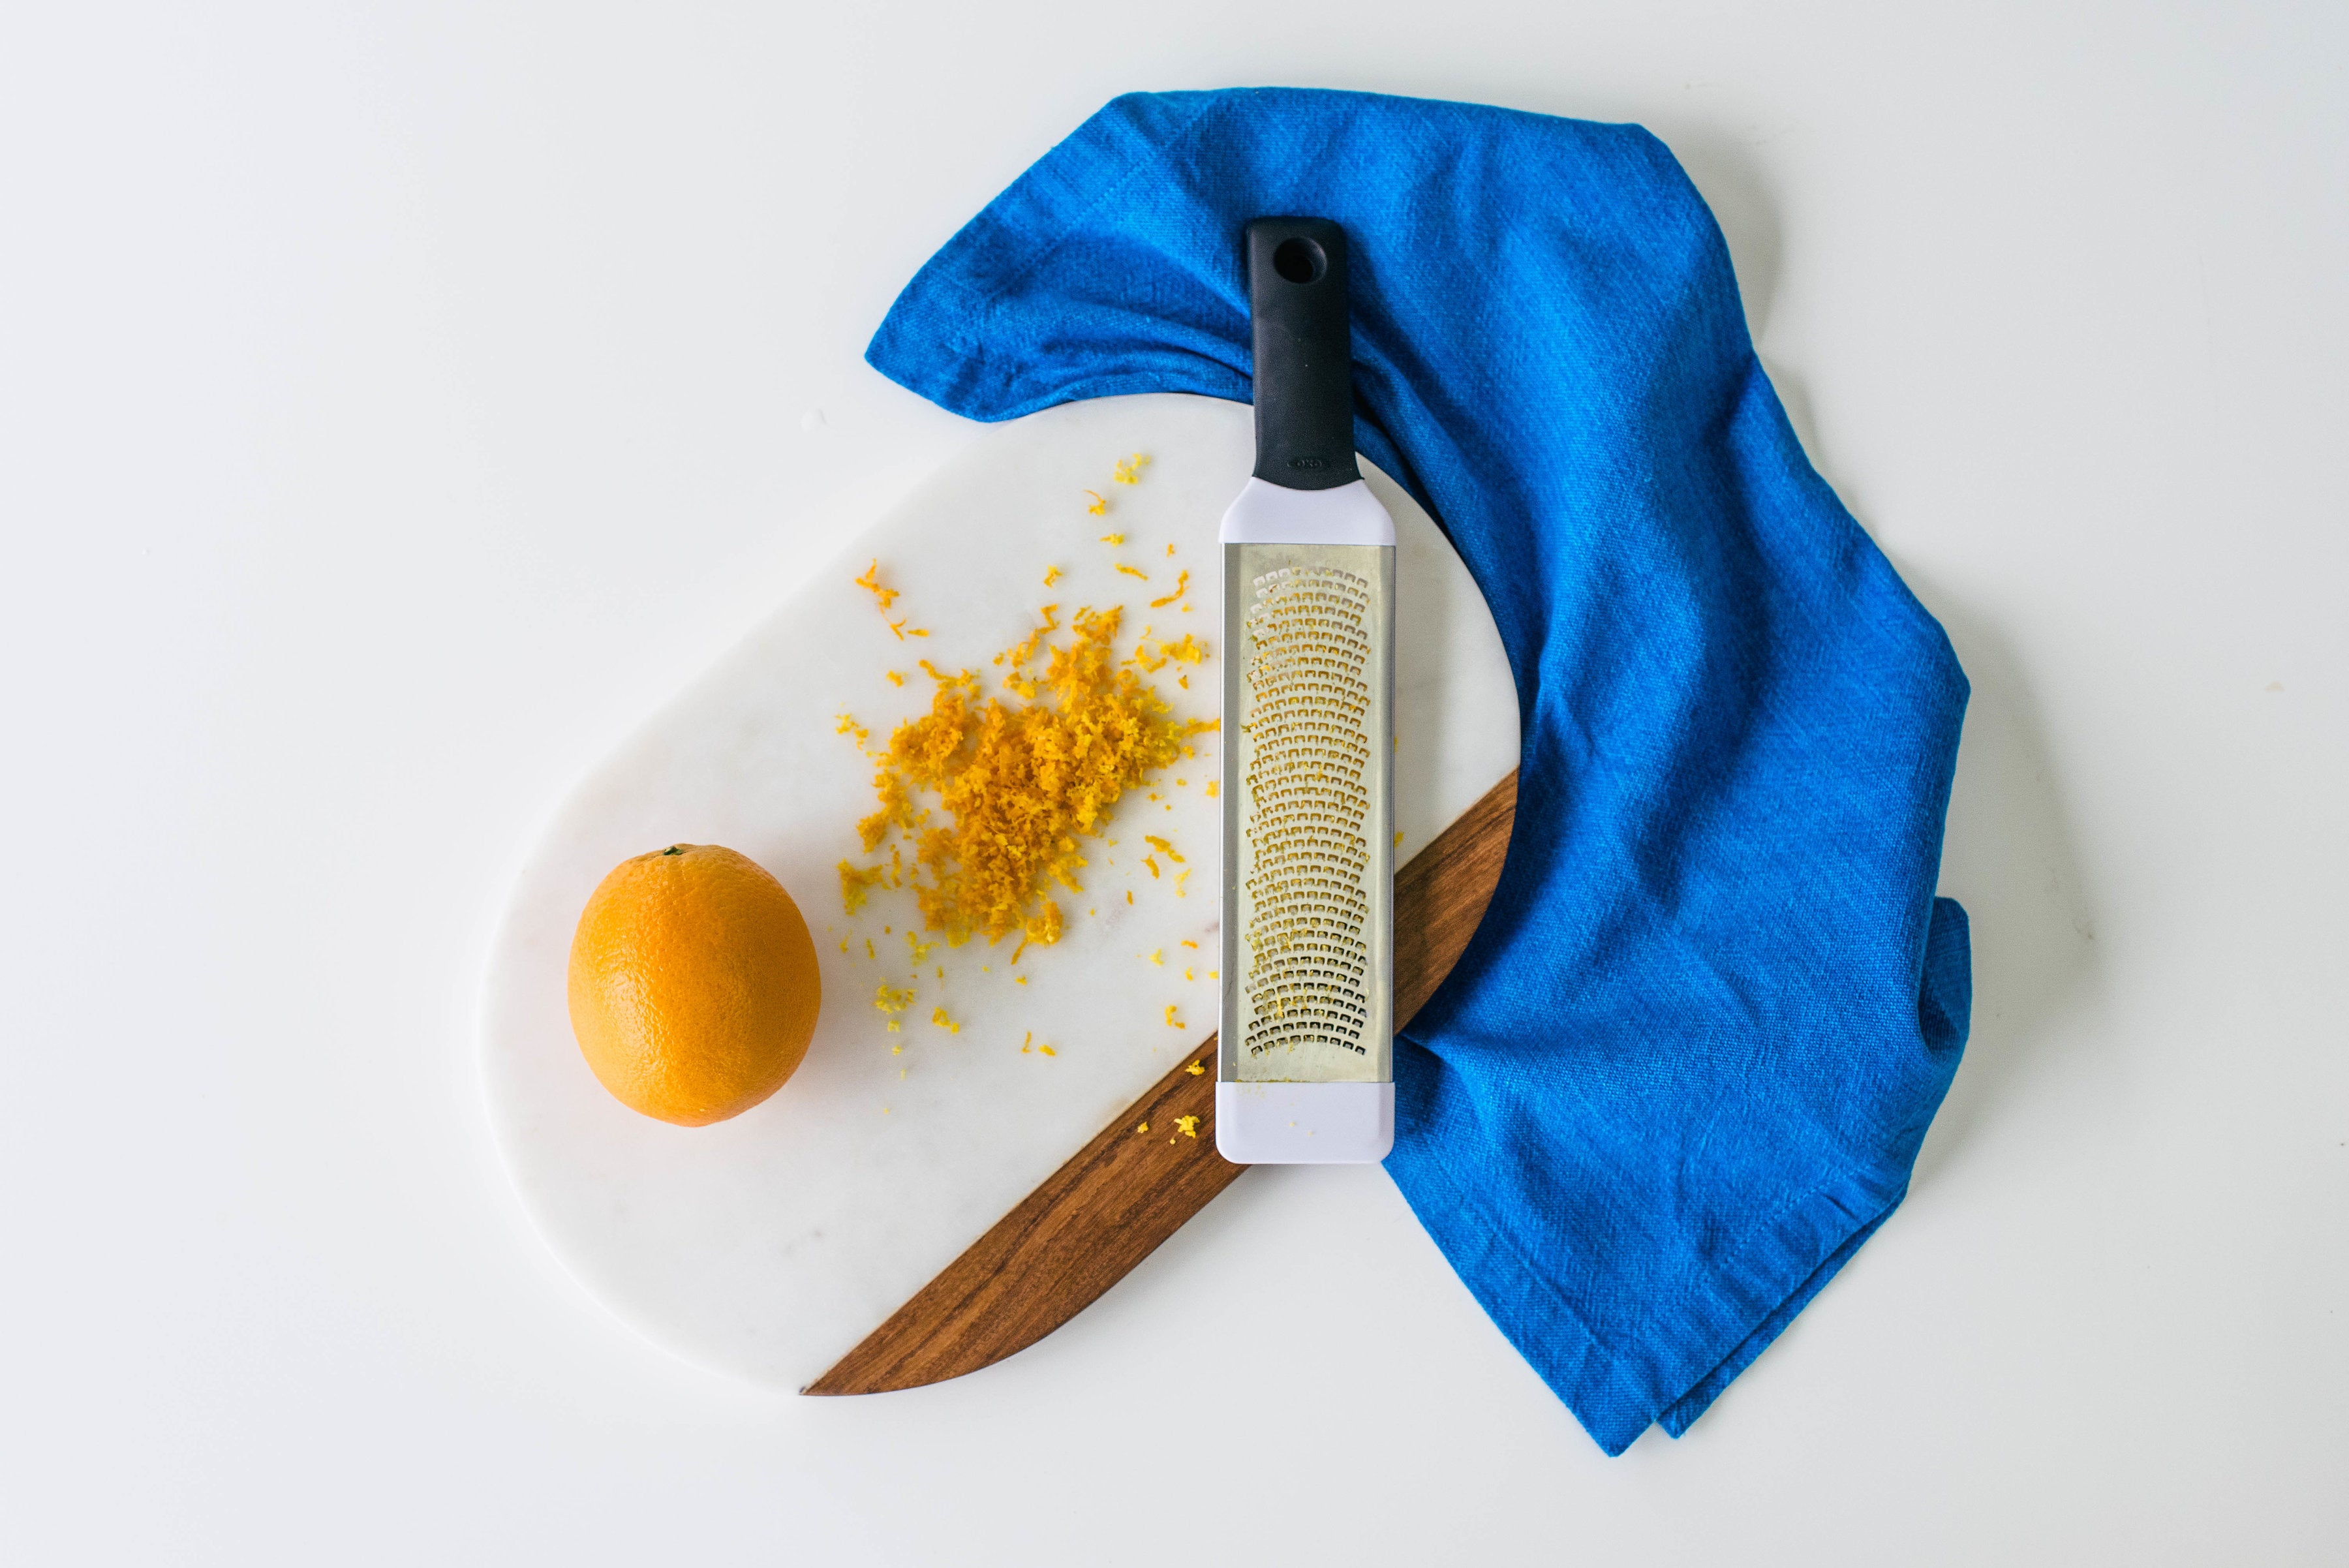 Image from above of an orange, orange zest, and a zester on a cutting board for Miss Jones Baking Co Mimosa Cupcakes